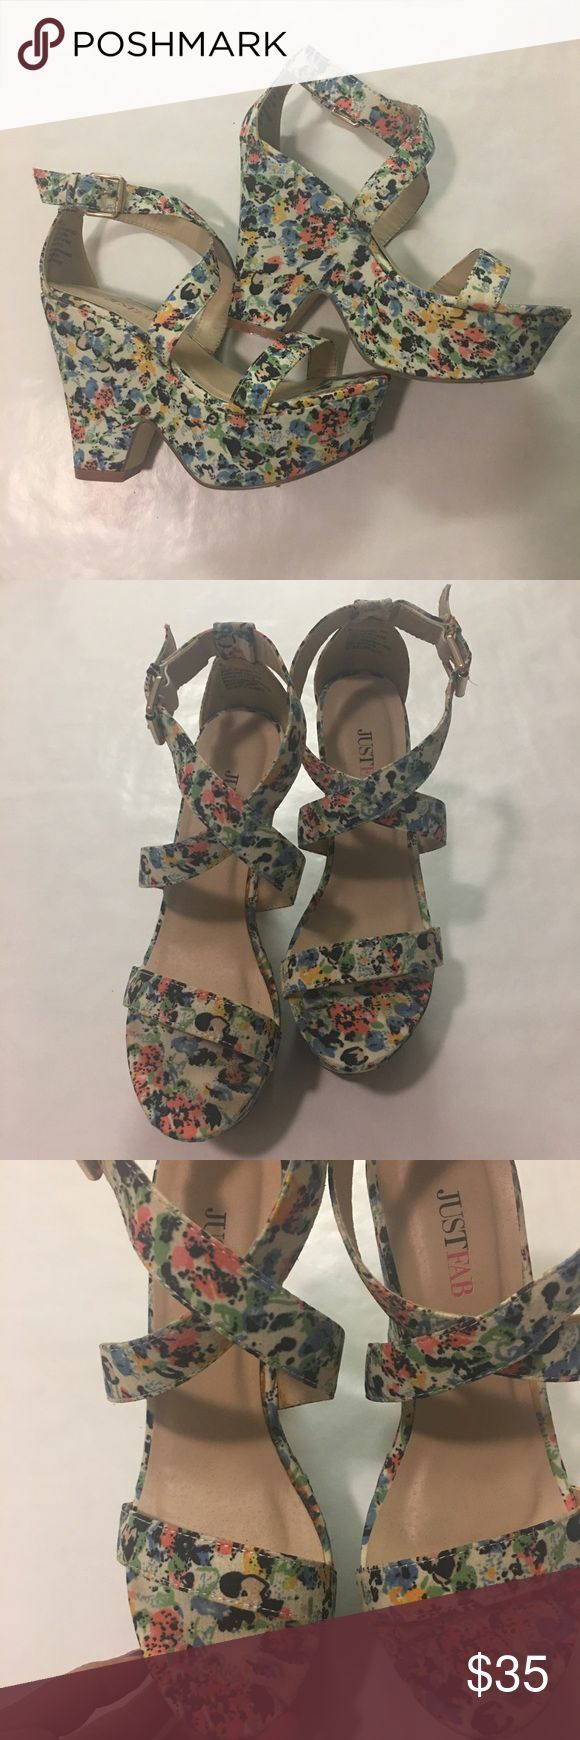 A pair of cute high heels from JustFab worn once These are comfortable colorful and floral heels from JustFab. I only wore them once so they're still in good condition. About a 3-4 inch heel JustFab Shoes Heels